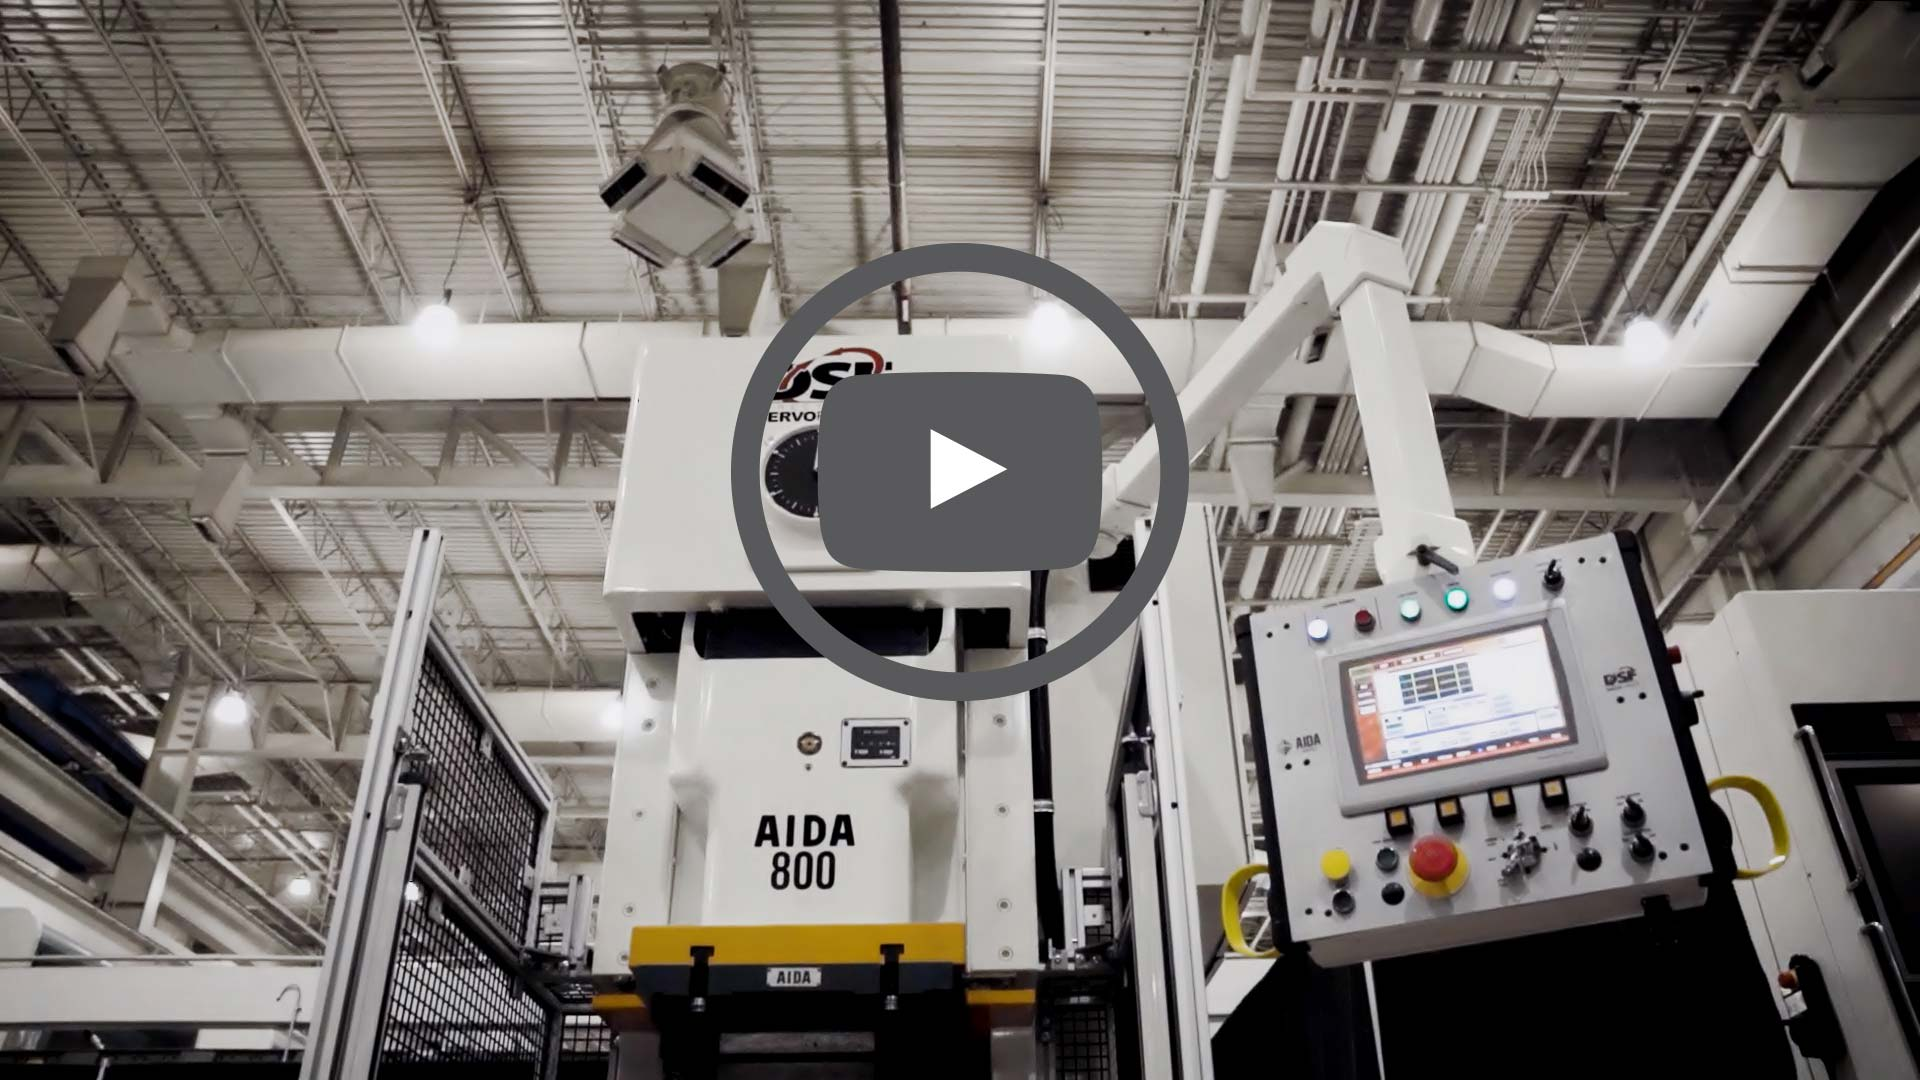 DSF-C1-800A Servo Press Blanking Video